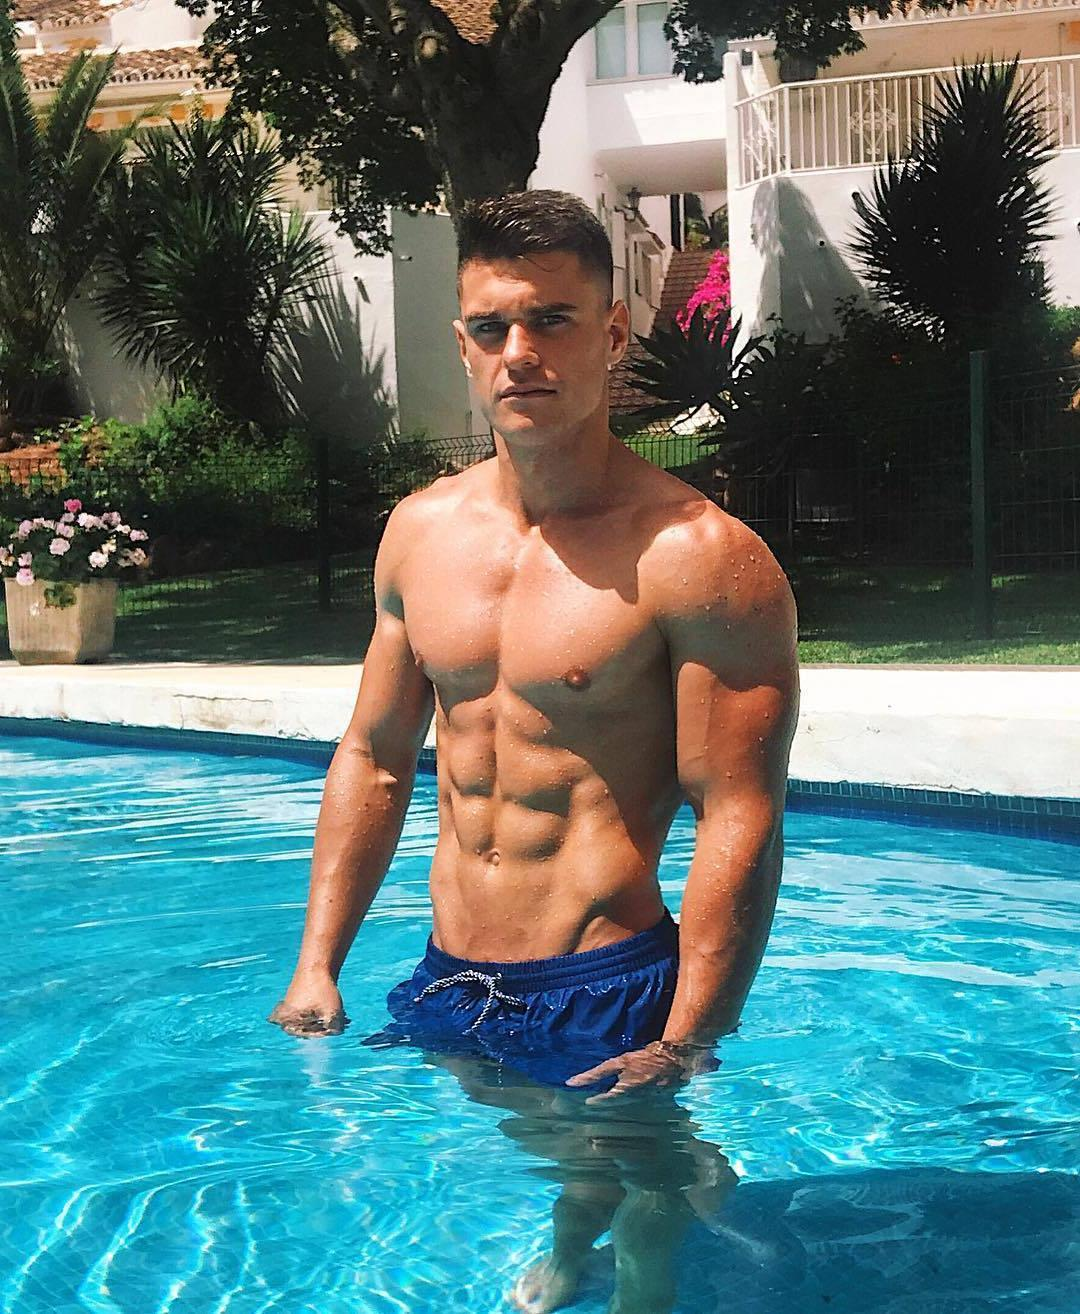 hot-fit-wet-guys-pool-fit-body-abs